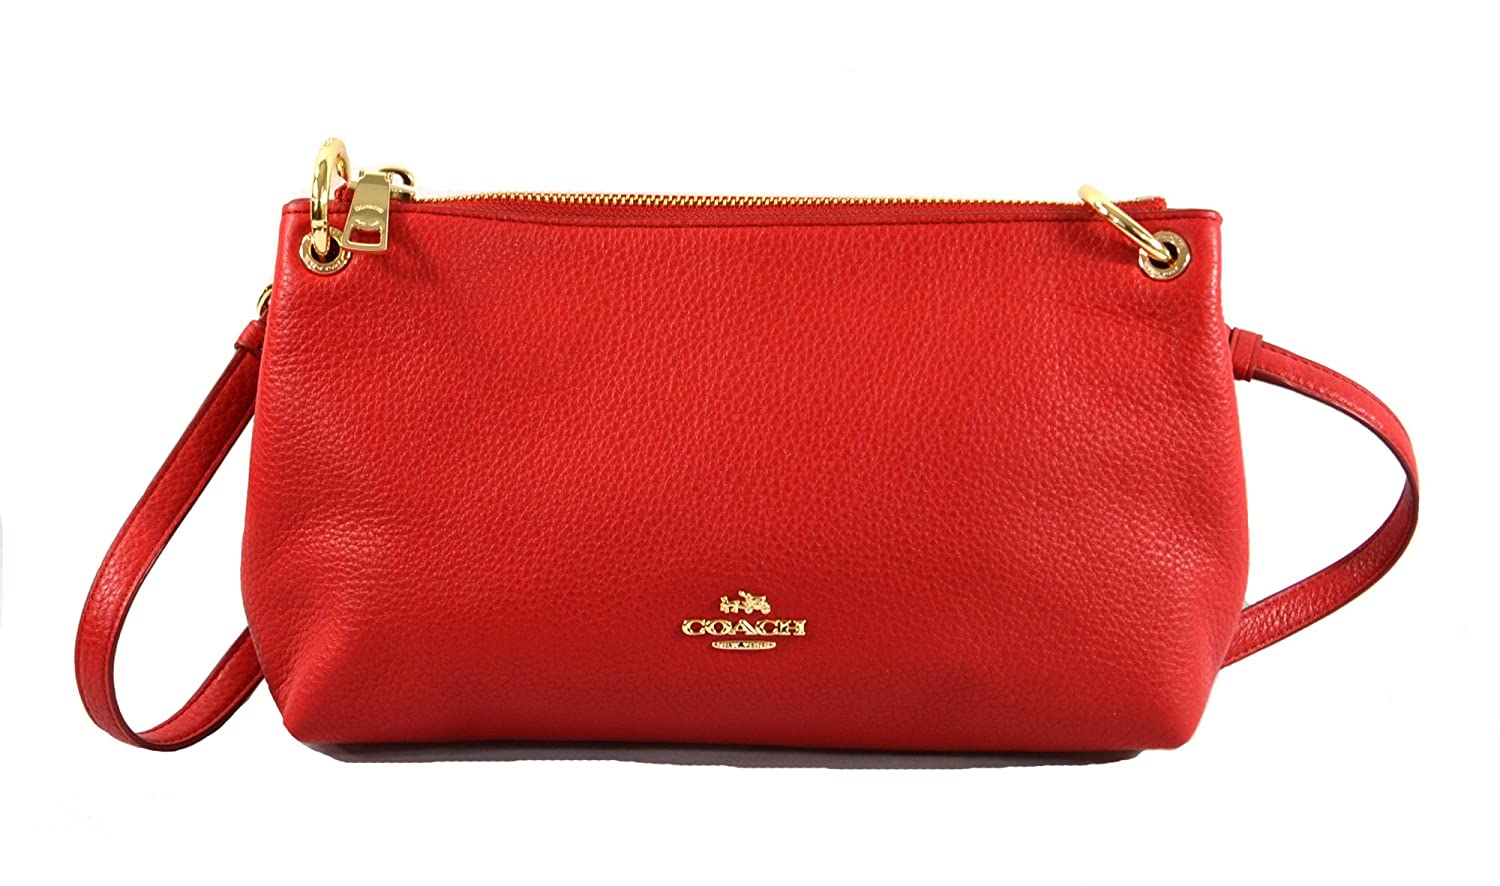 2f86340120c2 Coach Charley Crossbody in Pebble Leather True Red F55661  Handbags   Amazon.com